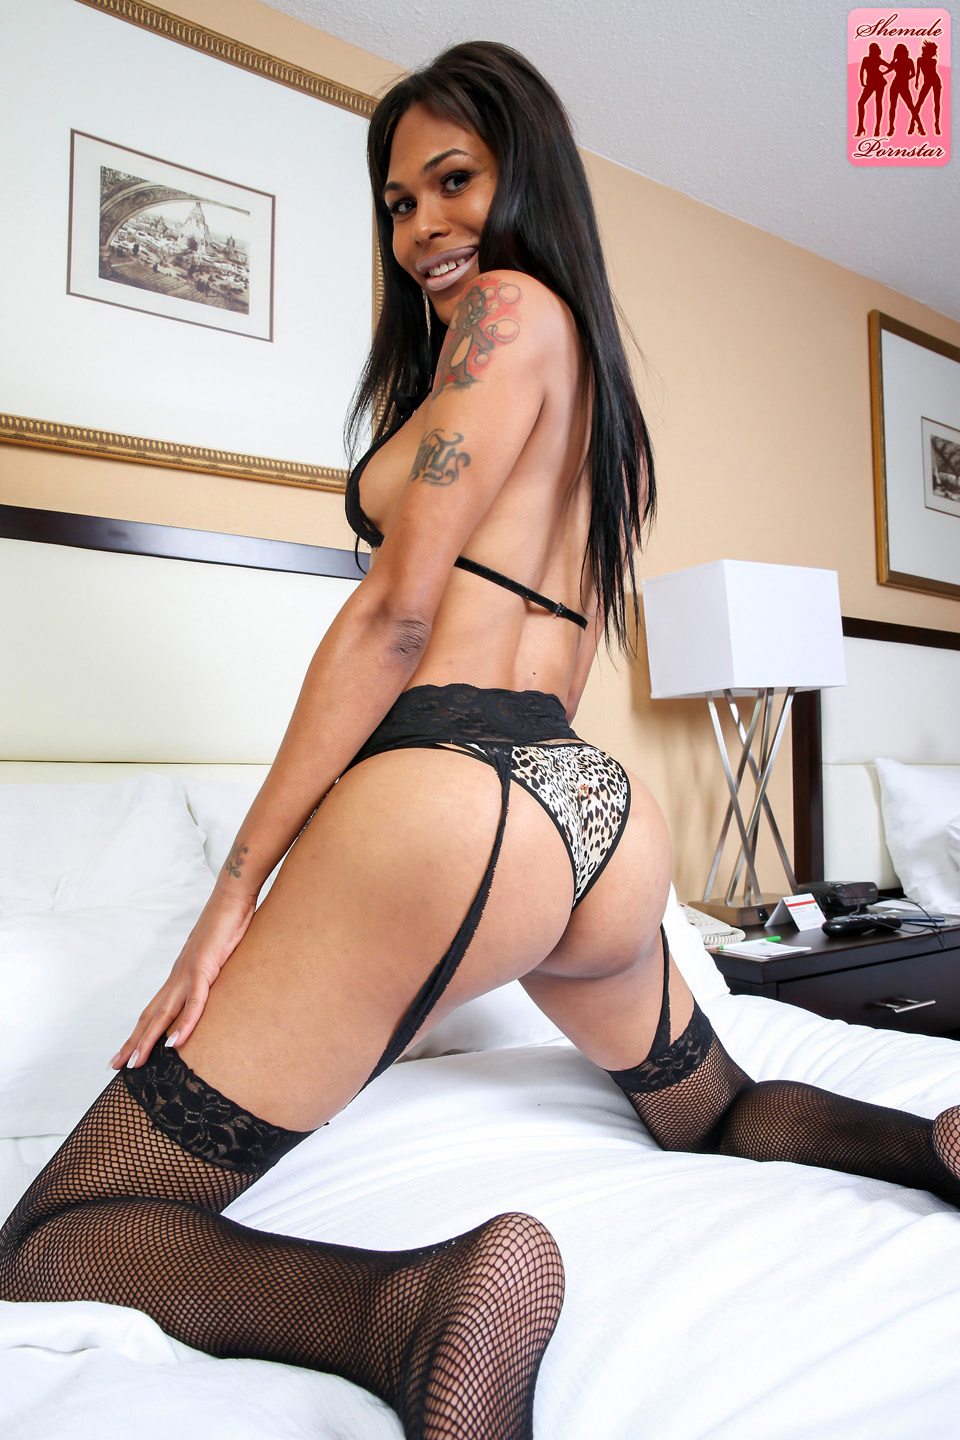 Provoking Kim Is A Racy Thin Grooby Girl With An Splendid Body